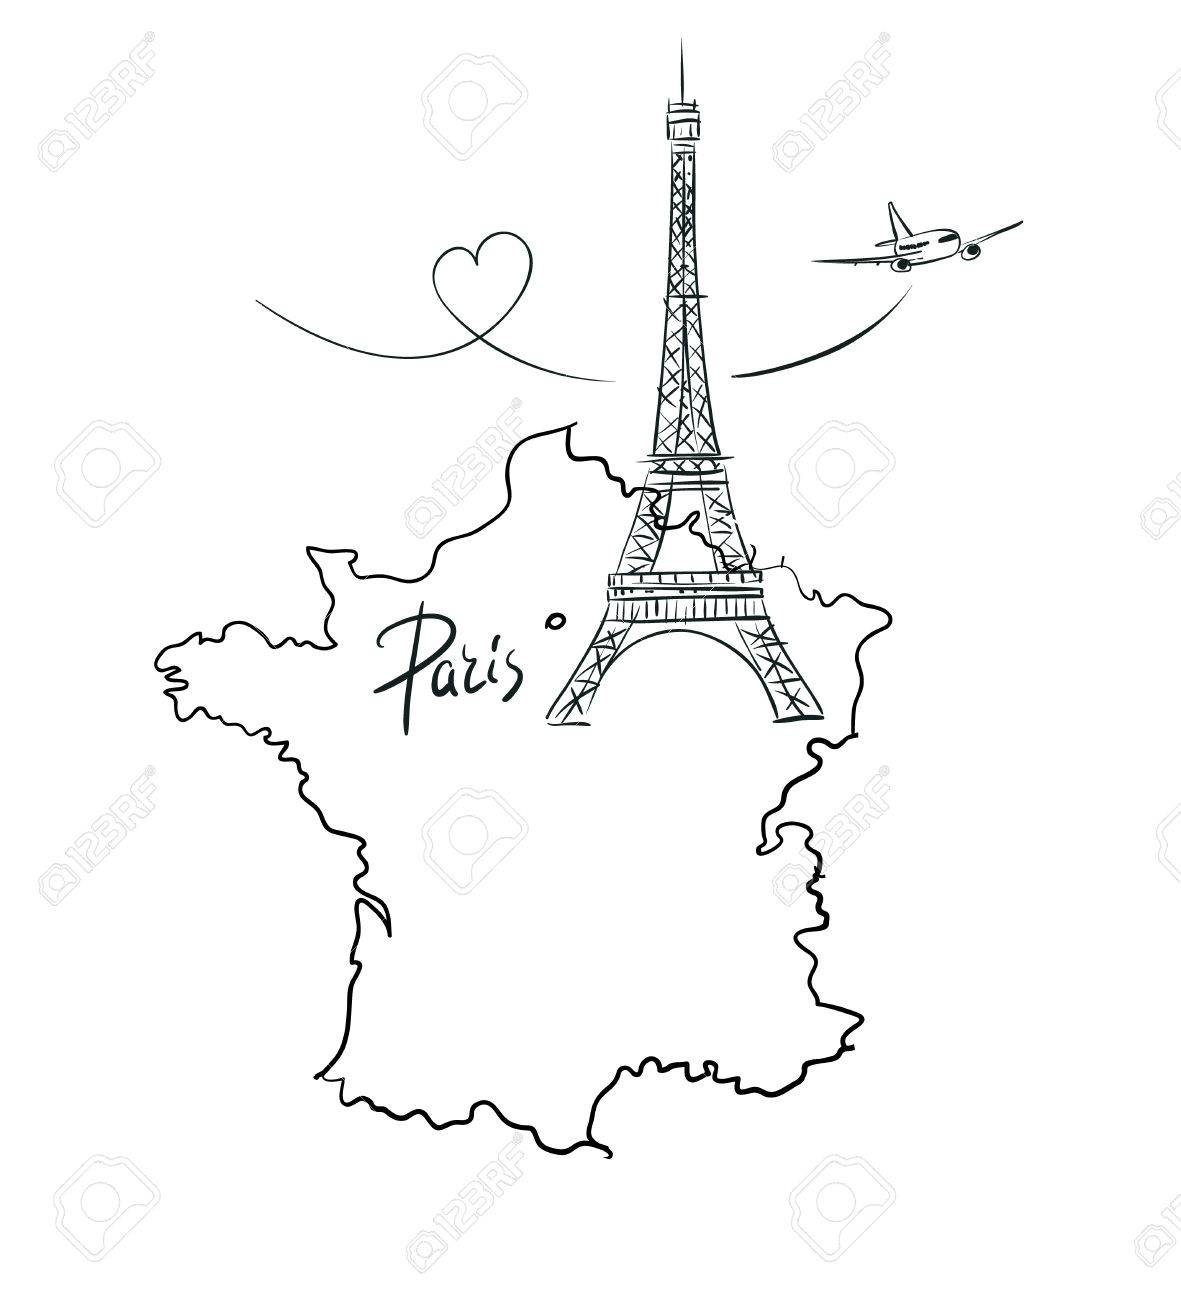 Hand Drawn Illustration With Eiffel Tower And Map Of France tout Dessin De Carte De France